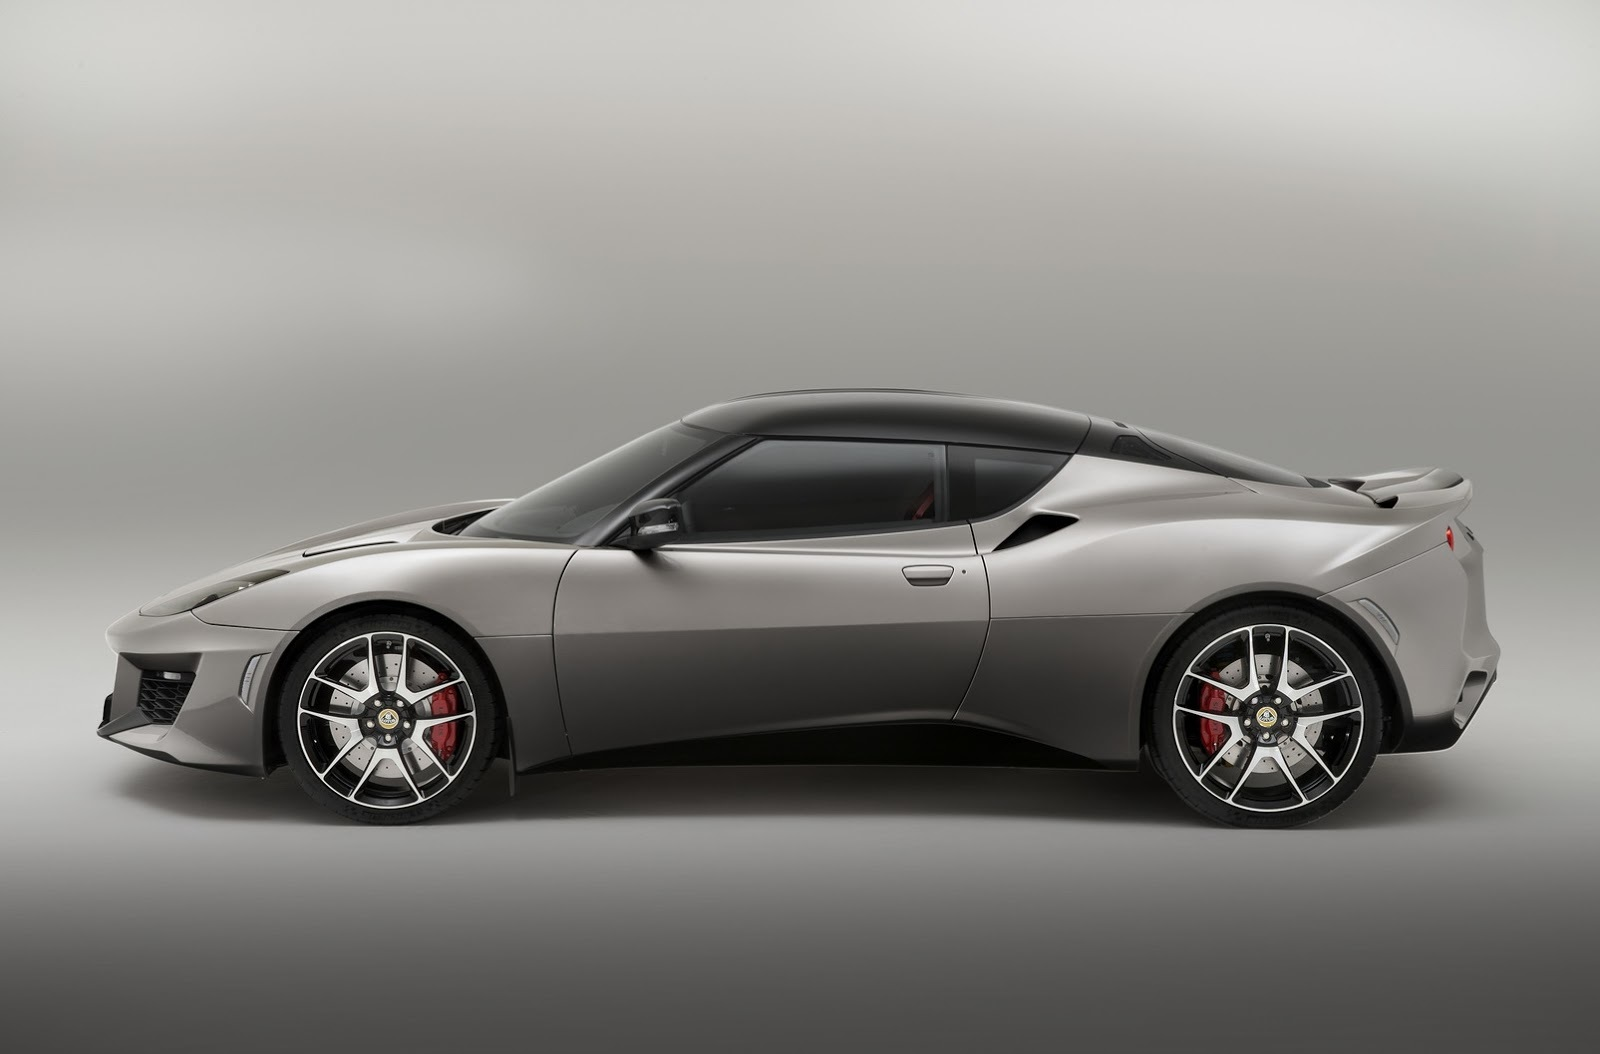 Lotus Evora Facelift (2015) 10